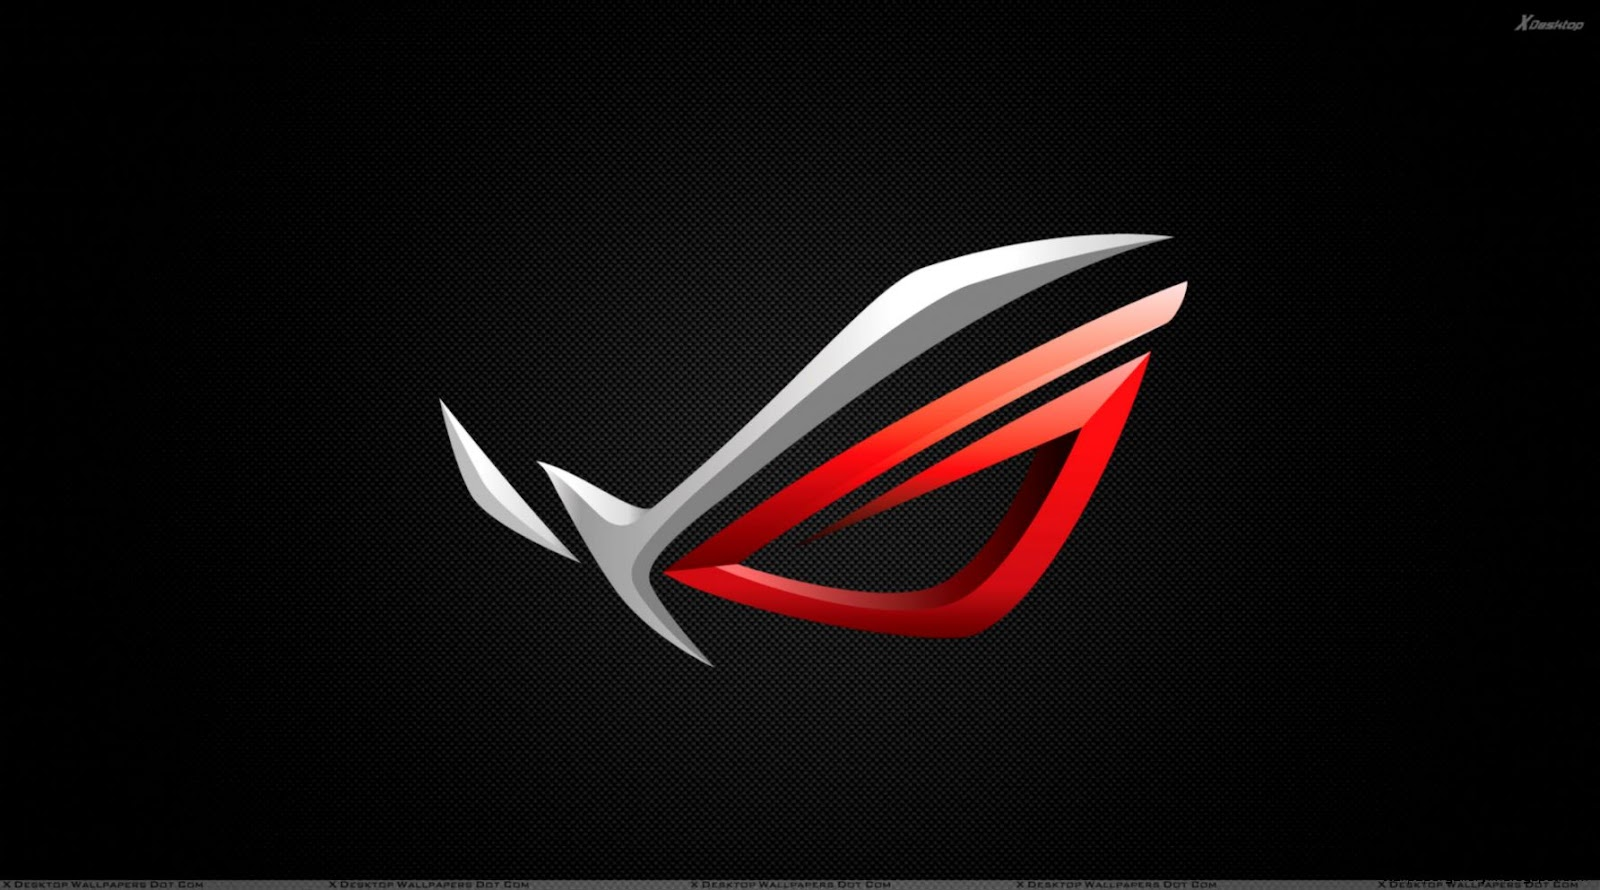 Wallpaper republic of gamers youtube - New Asus Rog Logo Hd Wallpaper Wallpaper Gallery